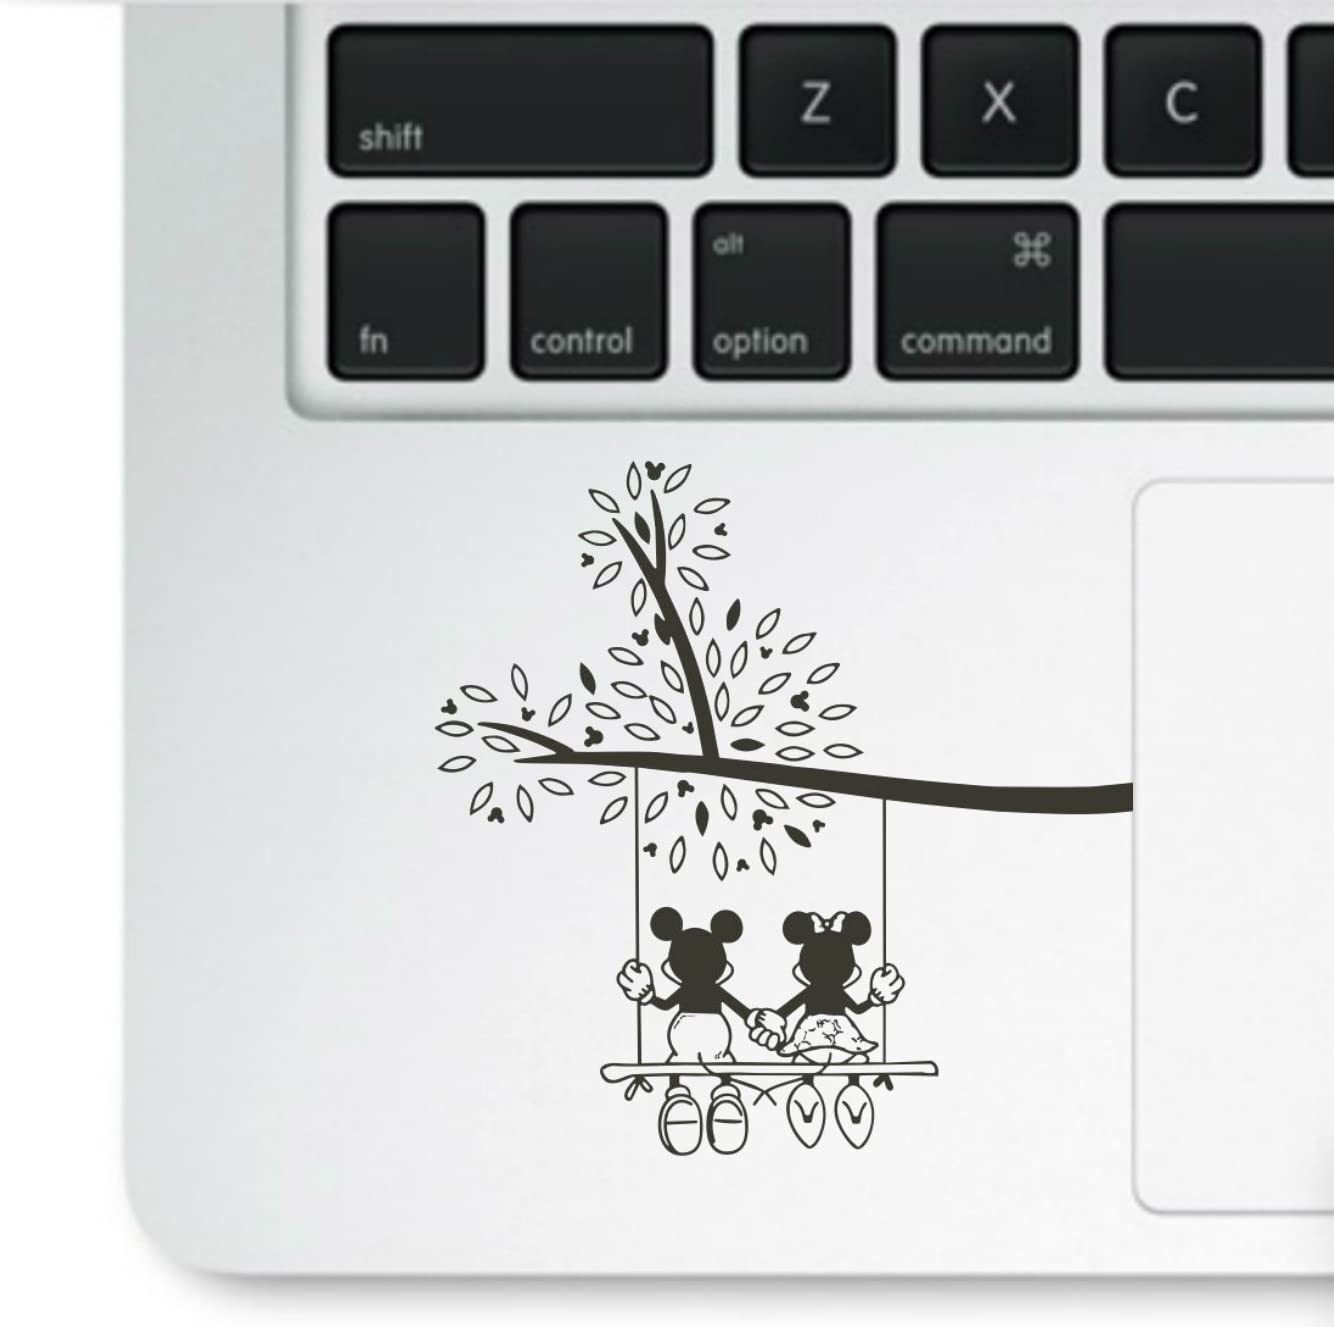 Decal & Sticker Pros Mouse on Swing Holding Hands Love Printed Clear Vinyl Decal Compatible with All Apple MacBook Pro, Retina, Air, Laptop Trackpad Sticker Decal